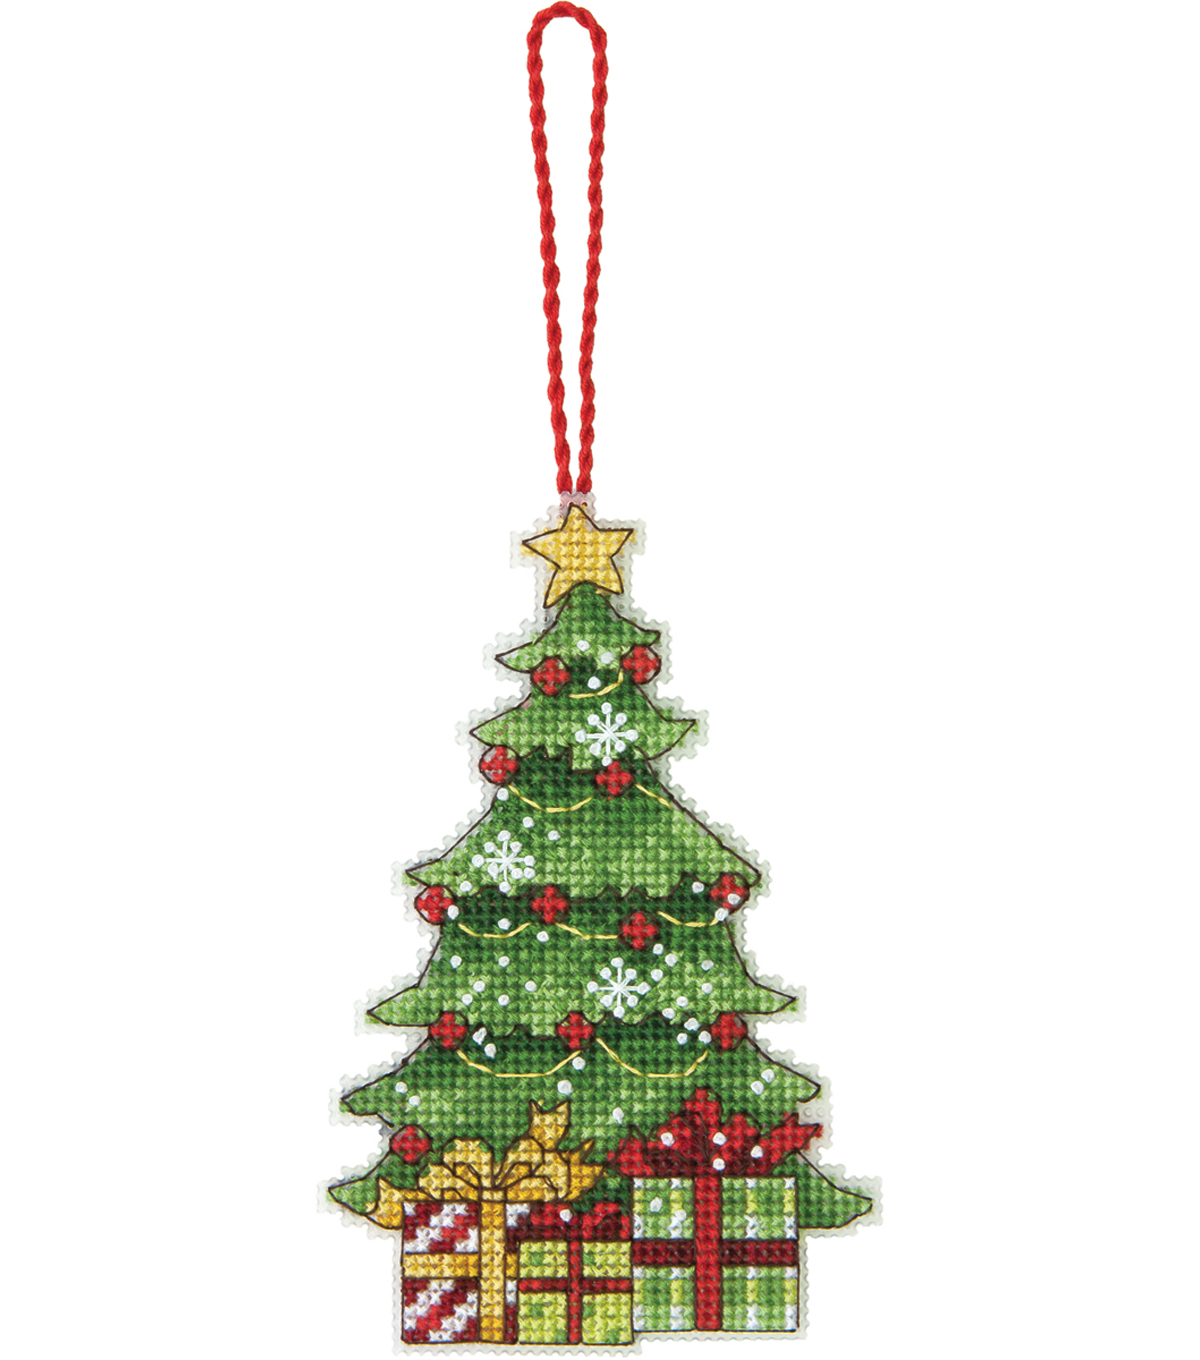 Tree Ornament Counted Cross Stitch Kit